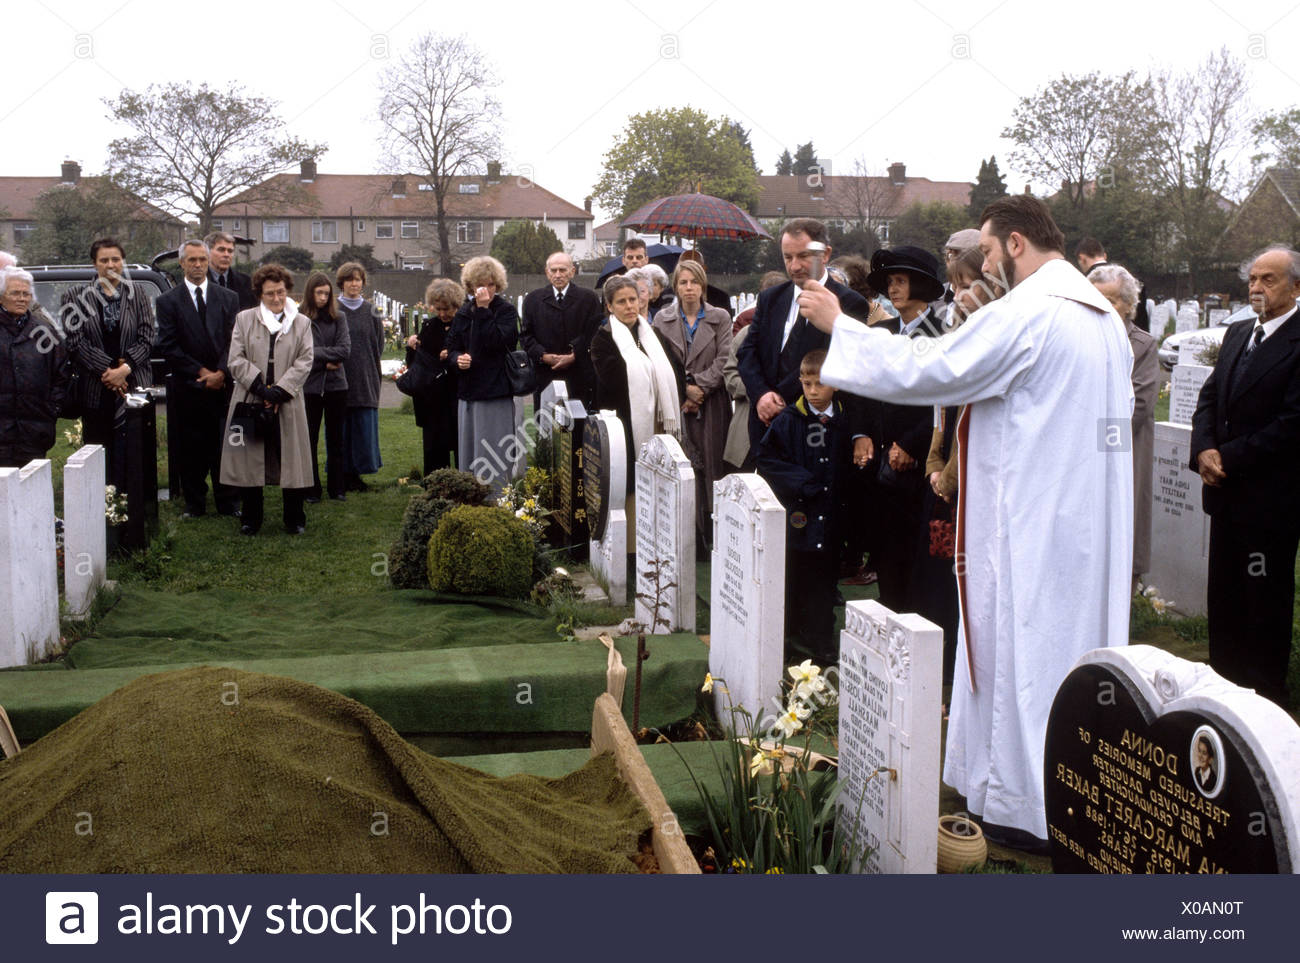 Catholic funeral where priest is blessing the coffin before it is covered with soil - Stock Image